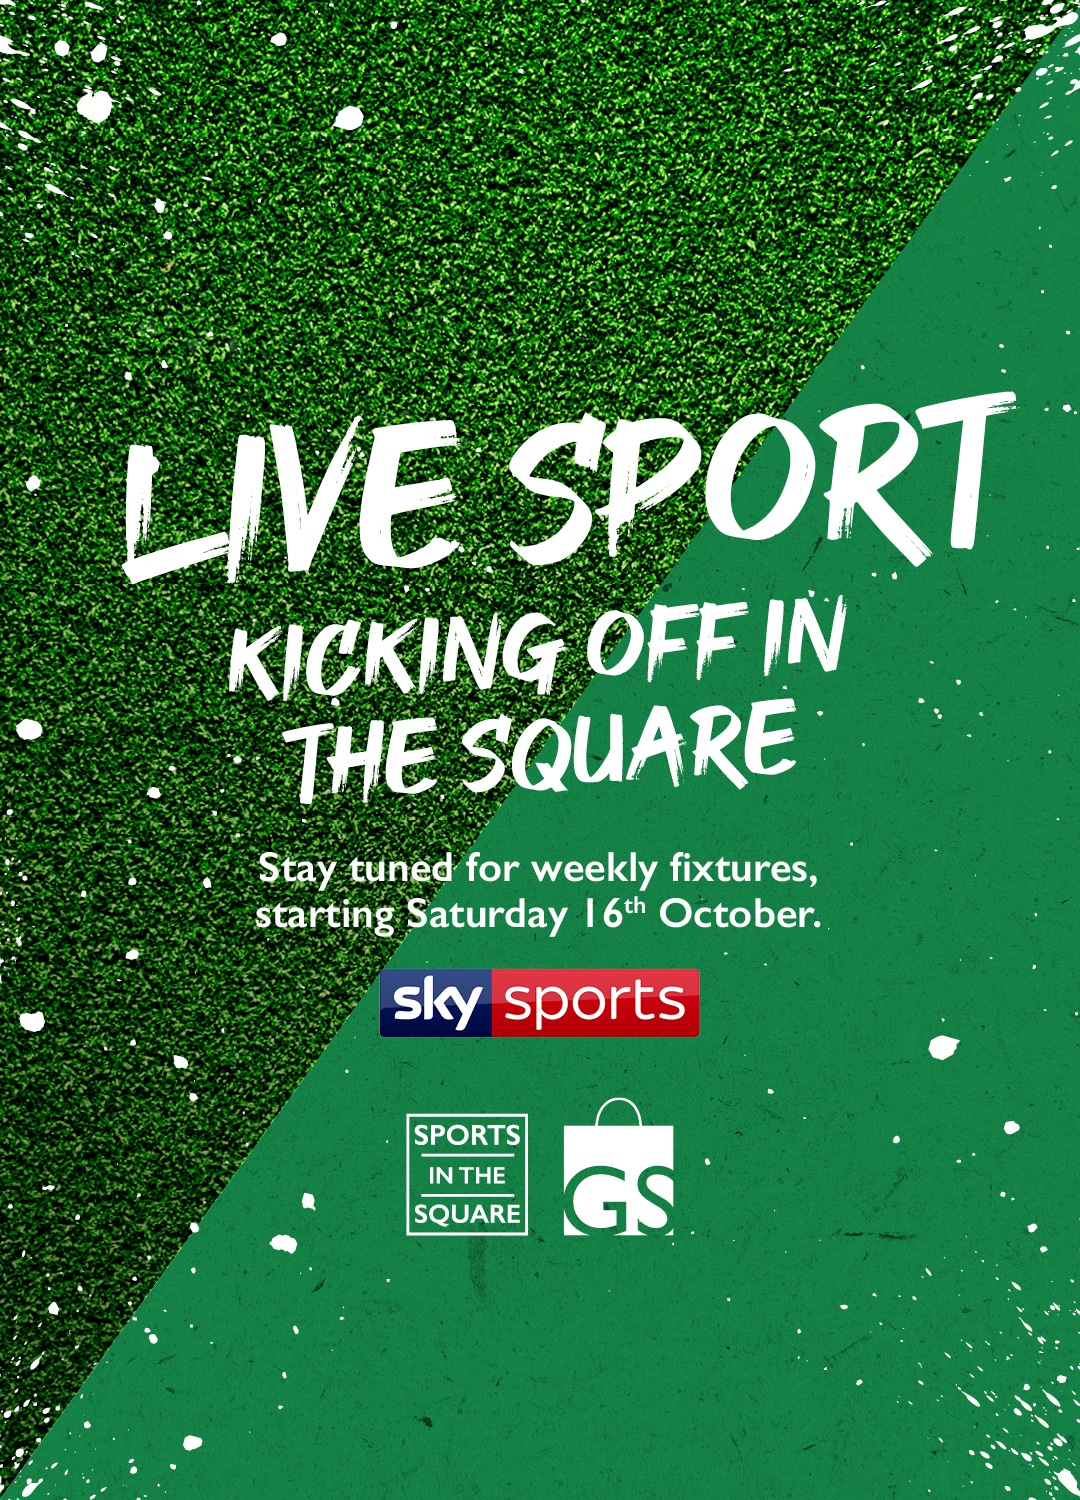 Live Sports in the Square